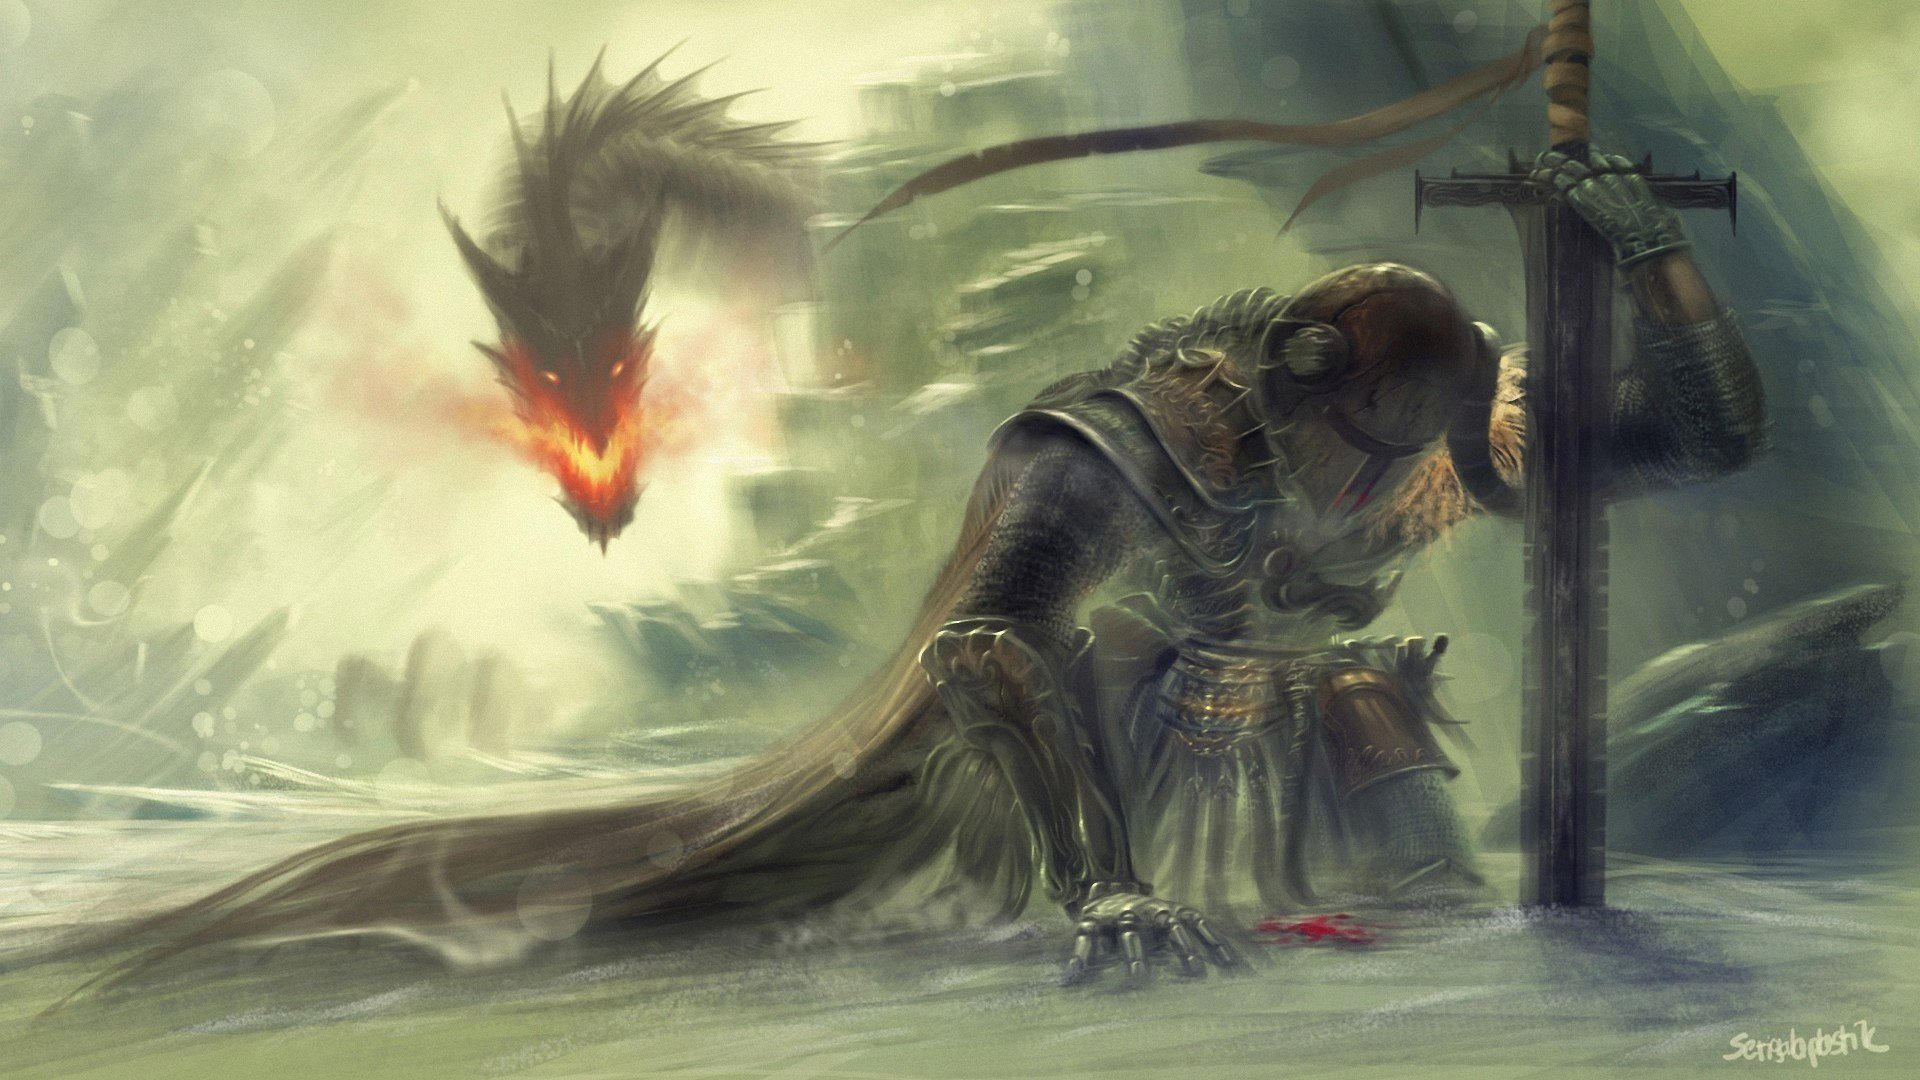 wallpaper-warrior-defeated-by-dragon.jpg